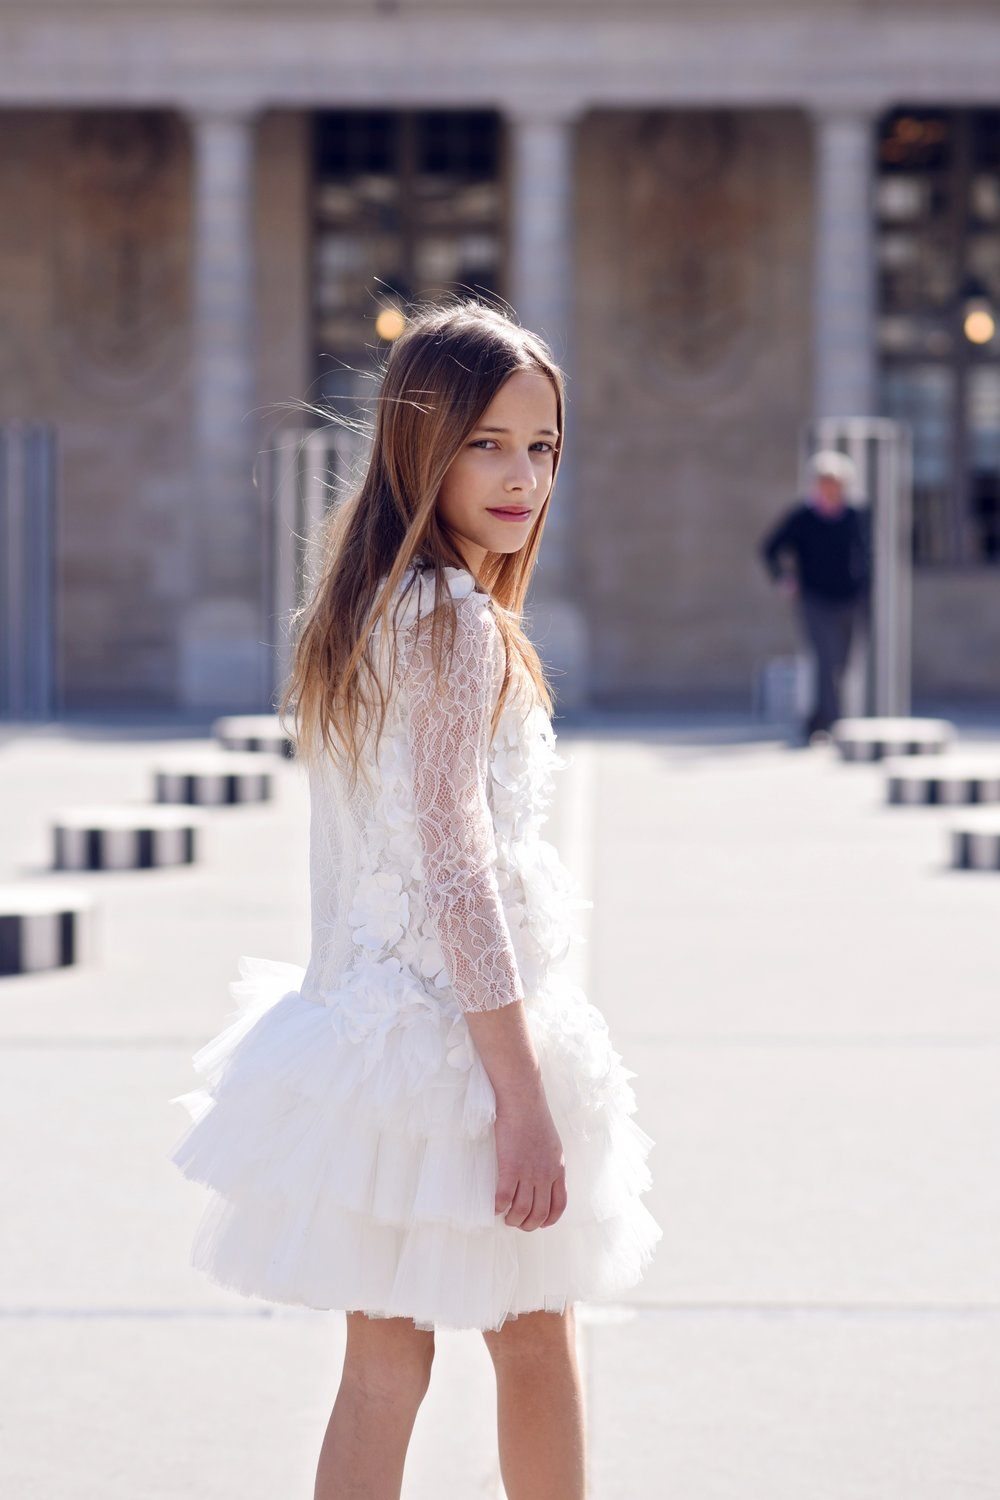 Enfant+Street+Style+by+Gina+Kim+Photography+Mischka+Aoki+Dress-1.jpeg